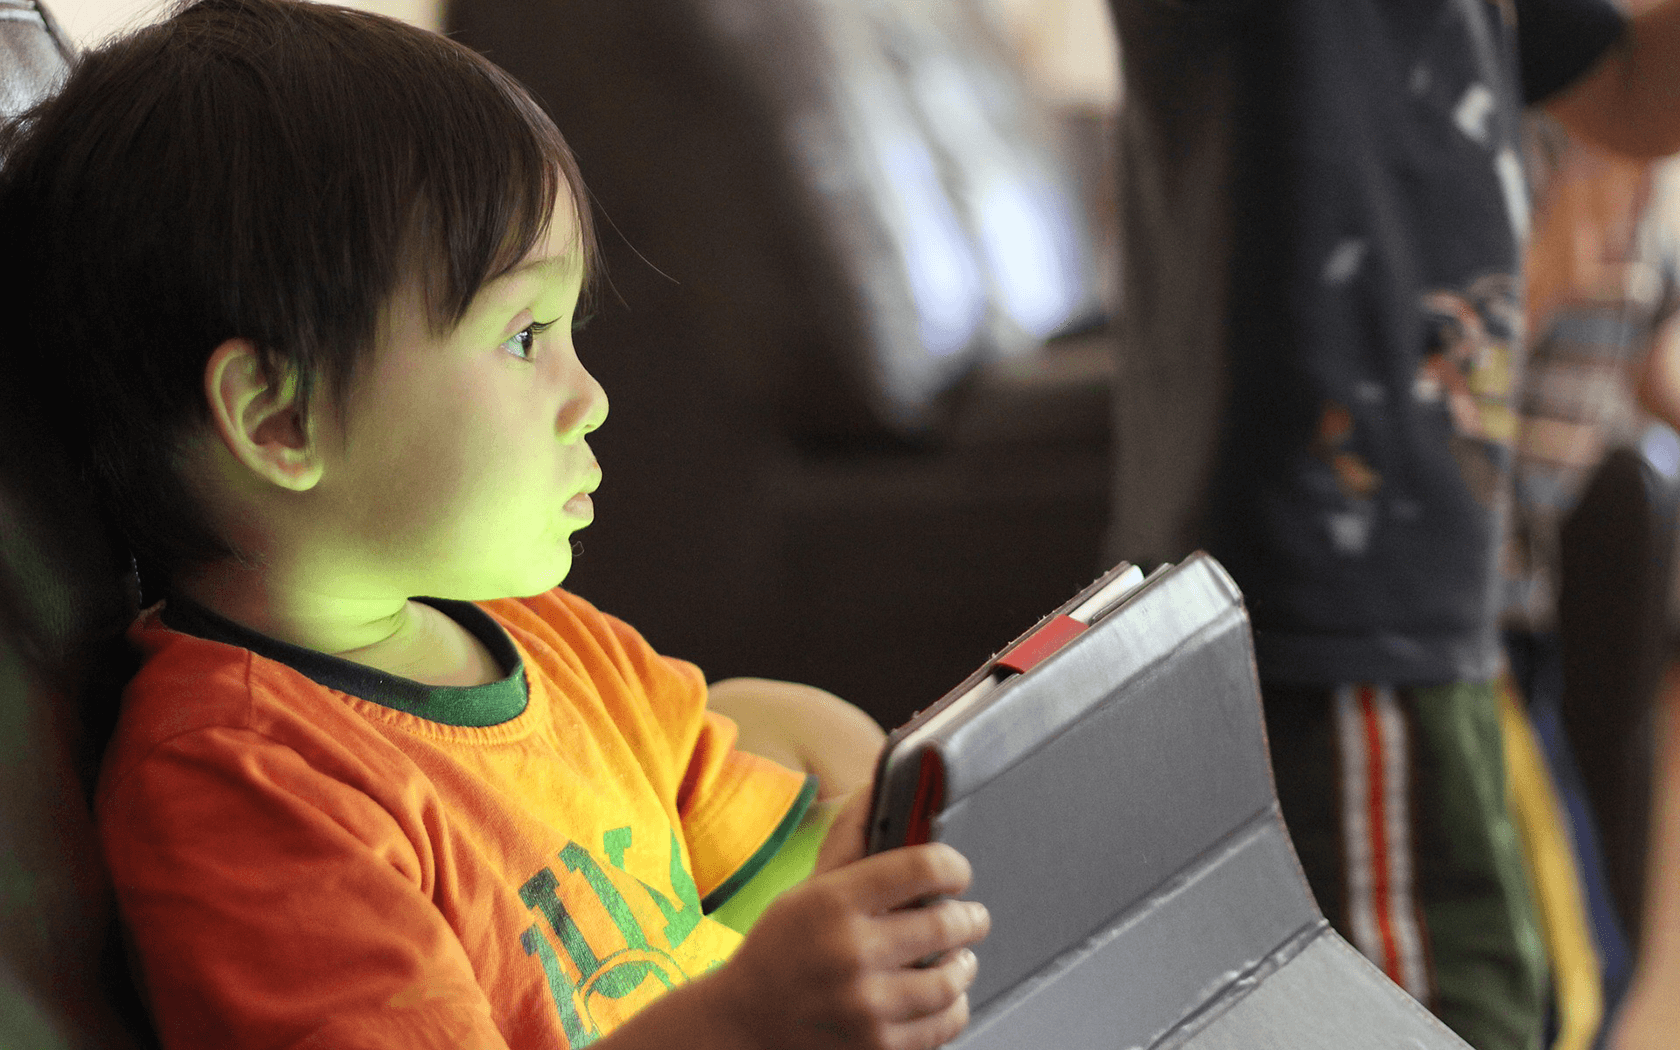 Parental Guidance Suggested: What to Do When Your Kid Sees Inappropriate Content Online